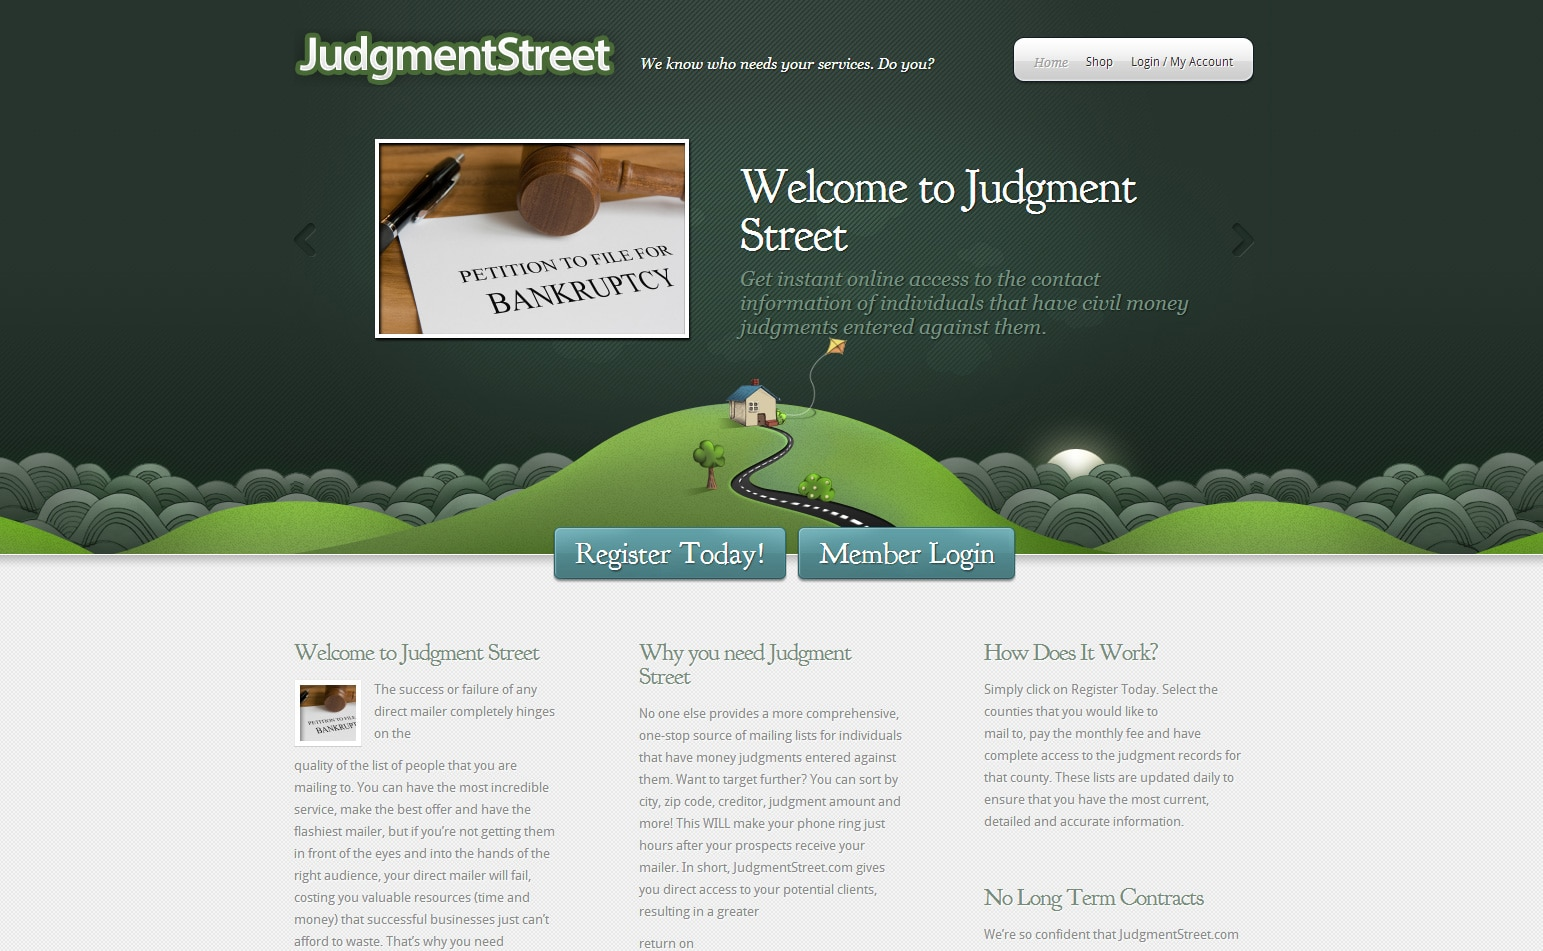 JudgmentStreet.com